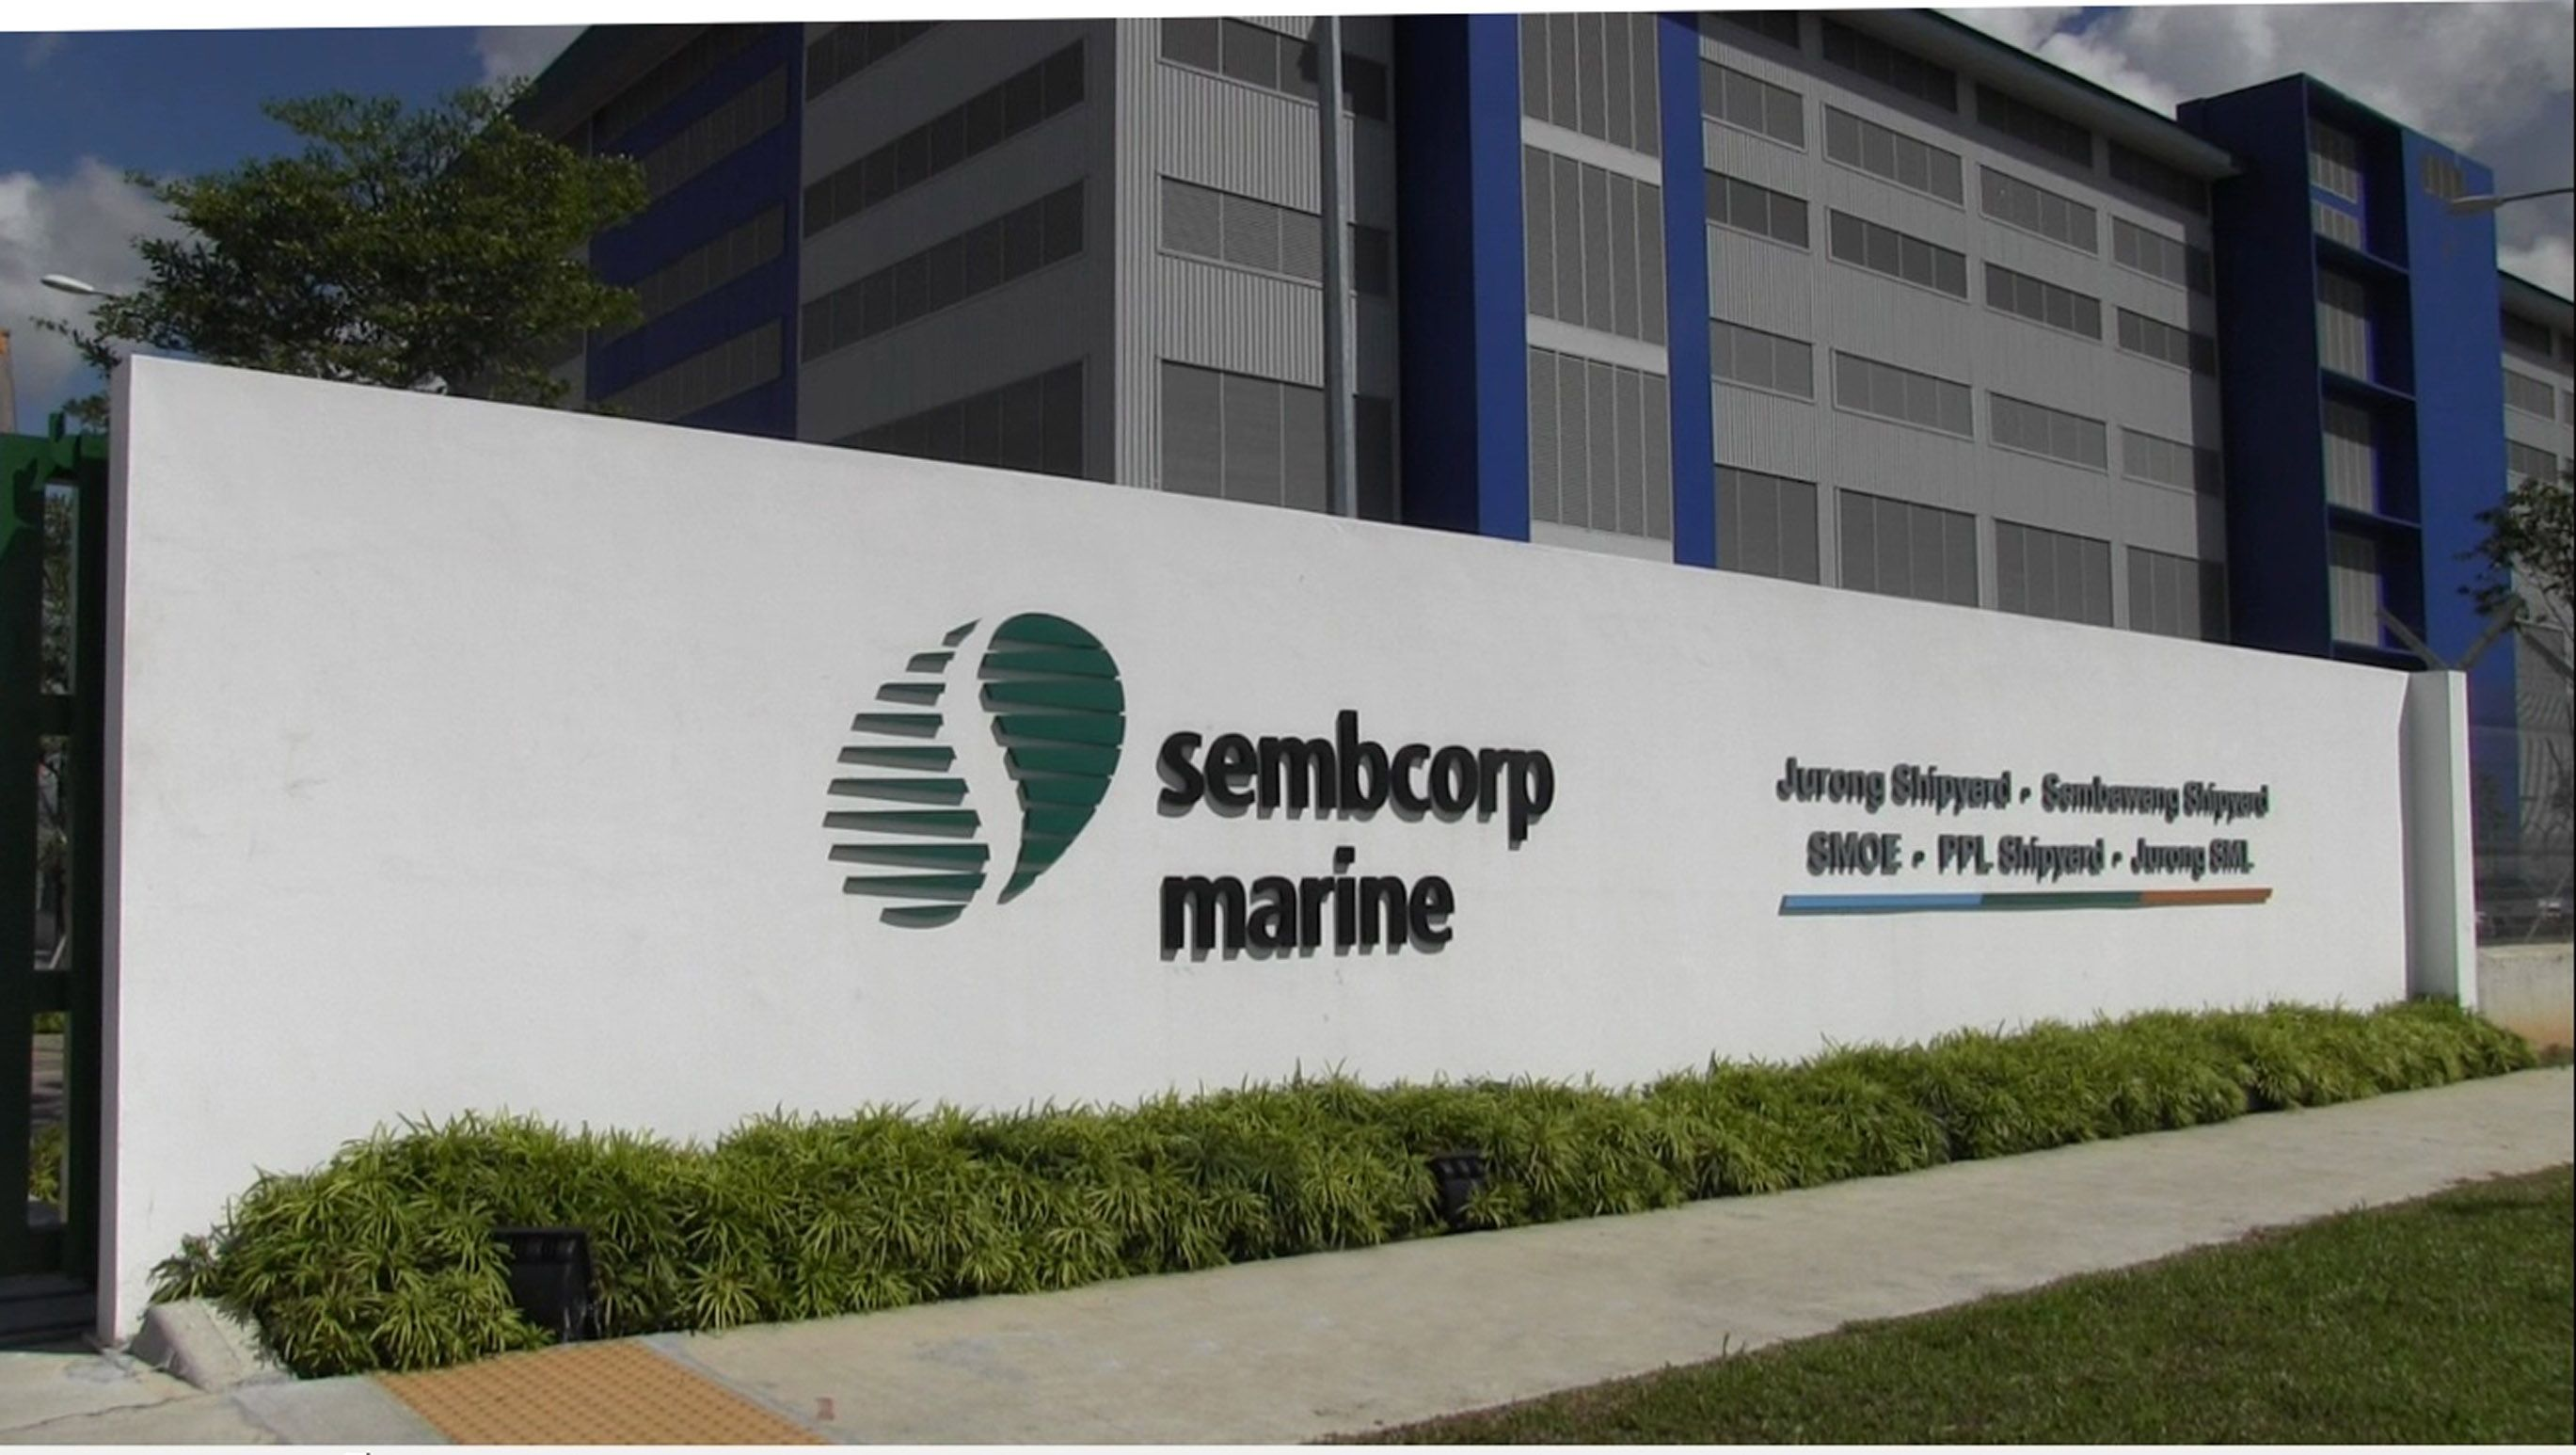 Bodies of 3 employees of Sembcorp Marine unit to be